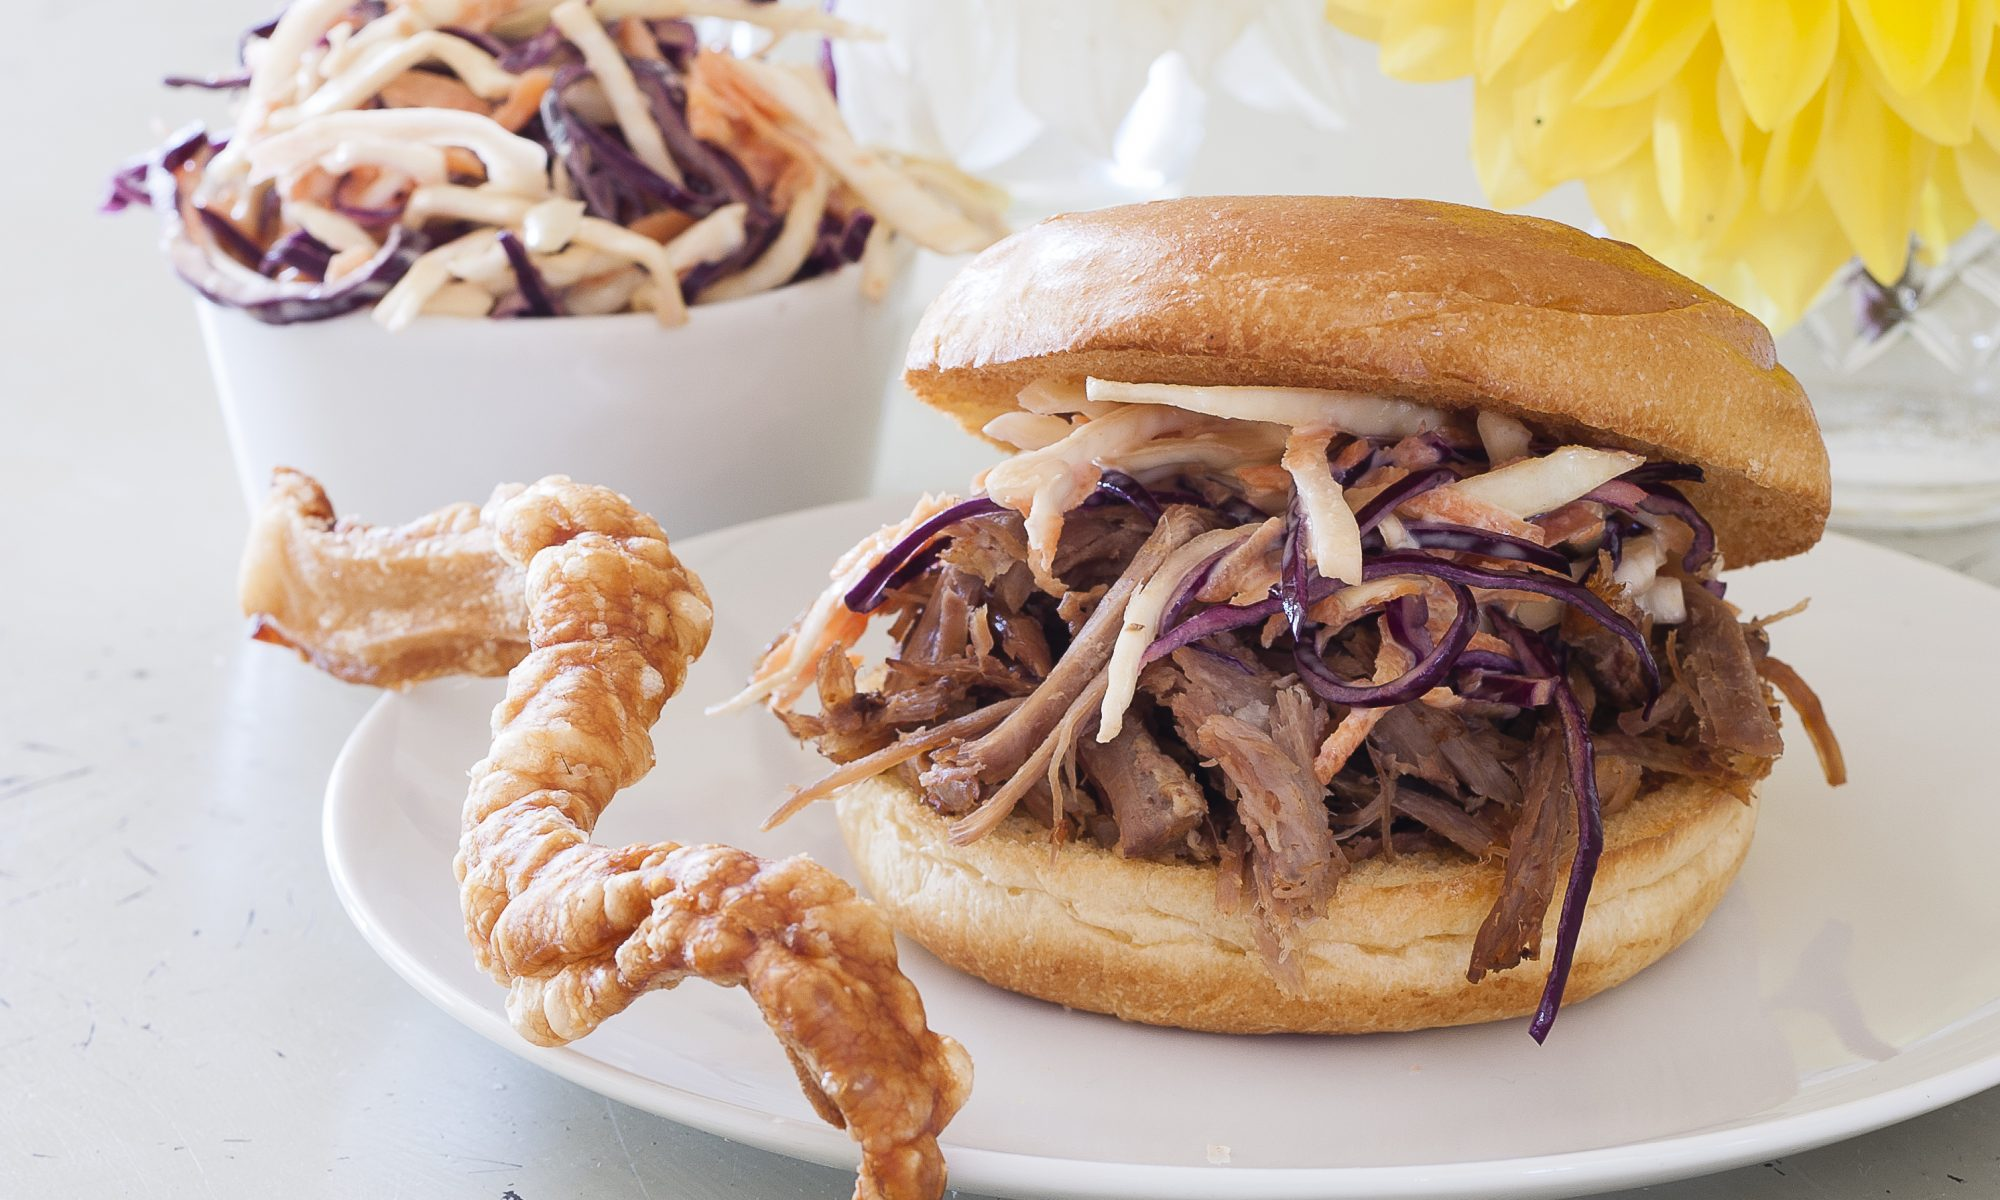 Pulled Pork Roll with Slaw